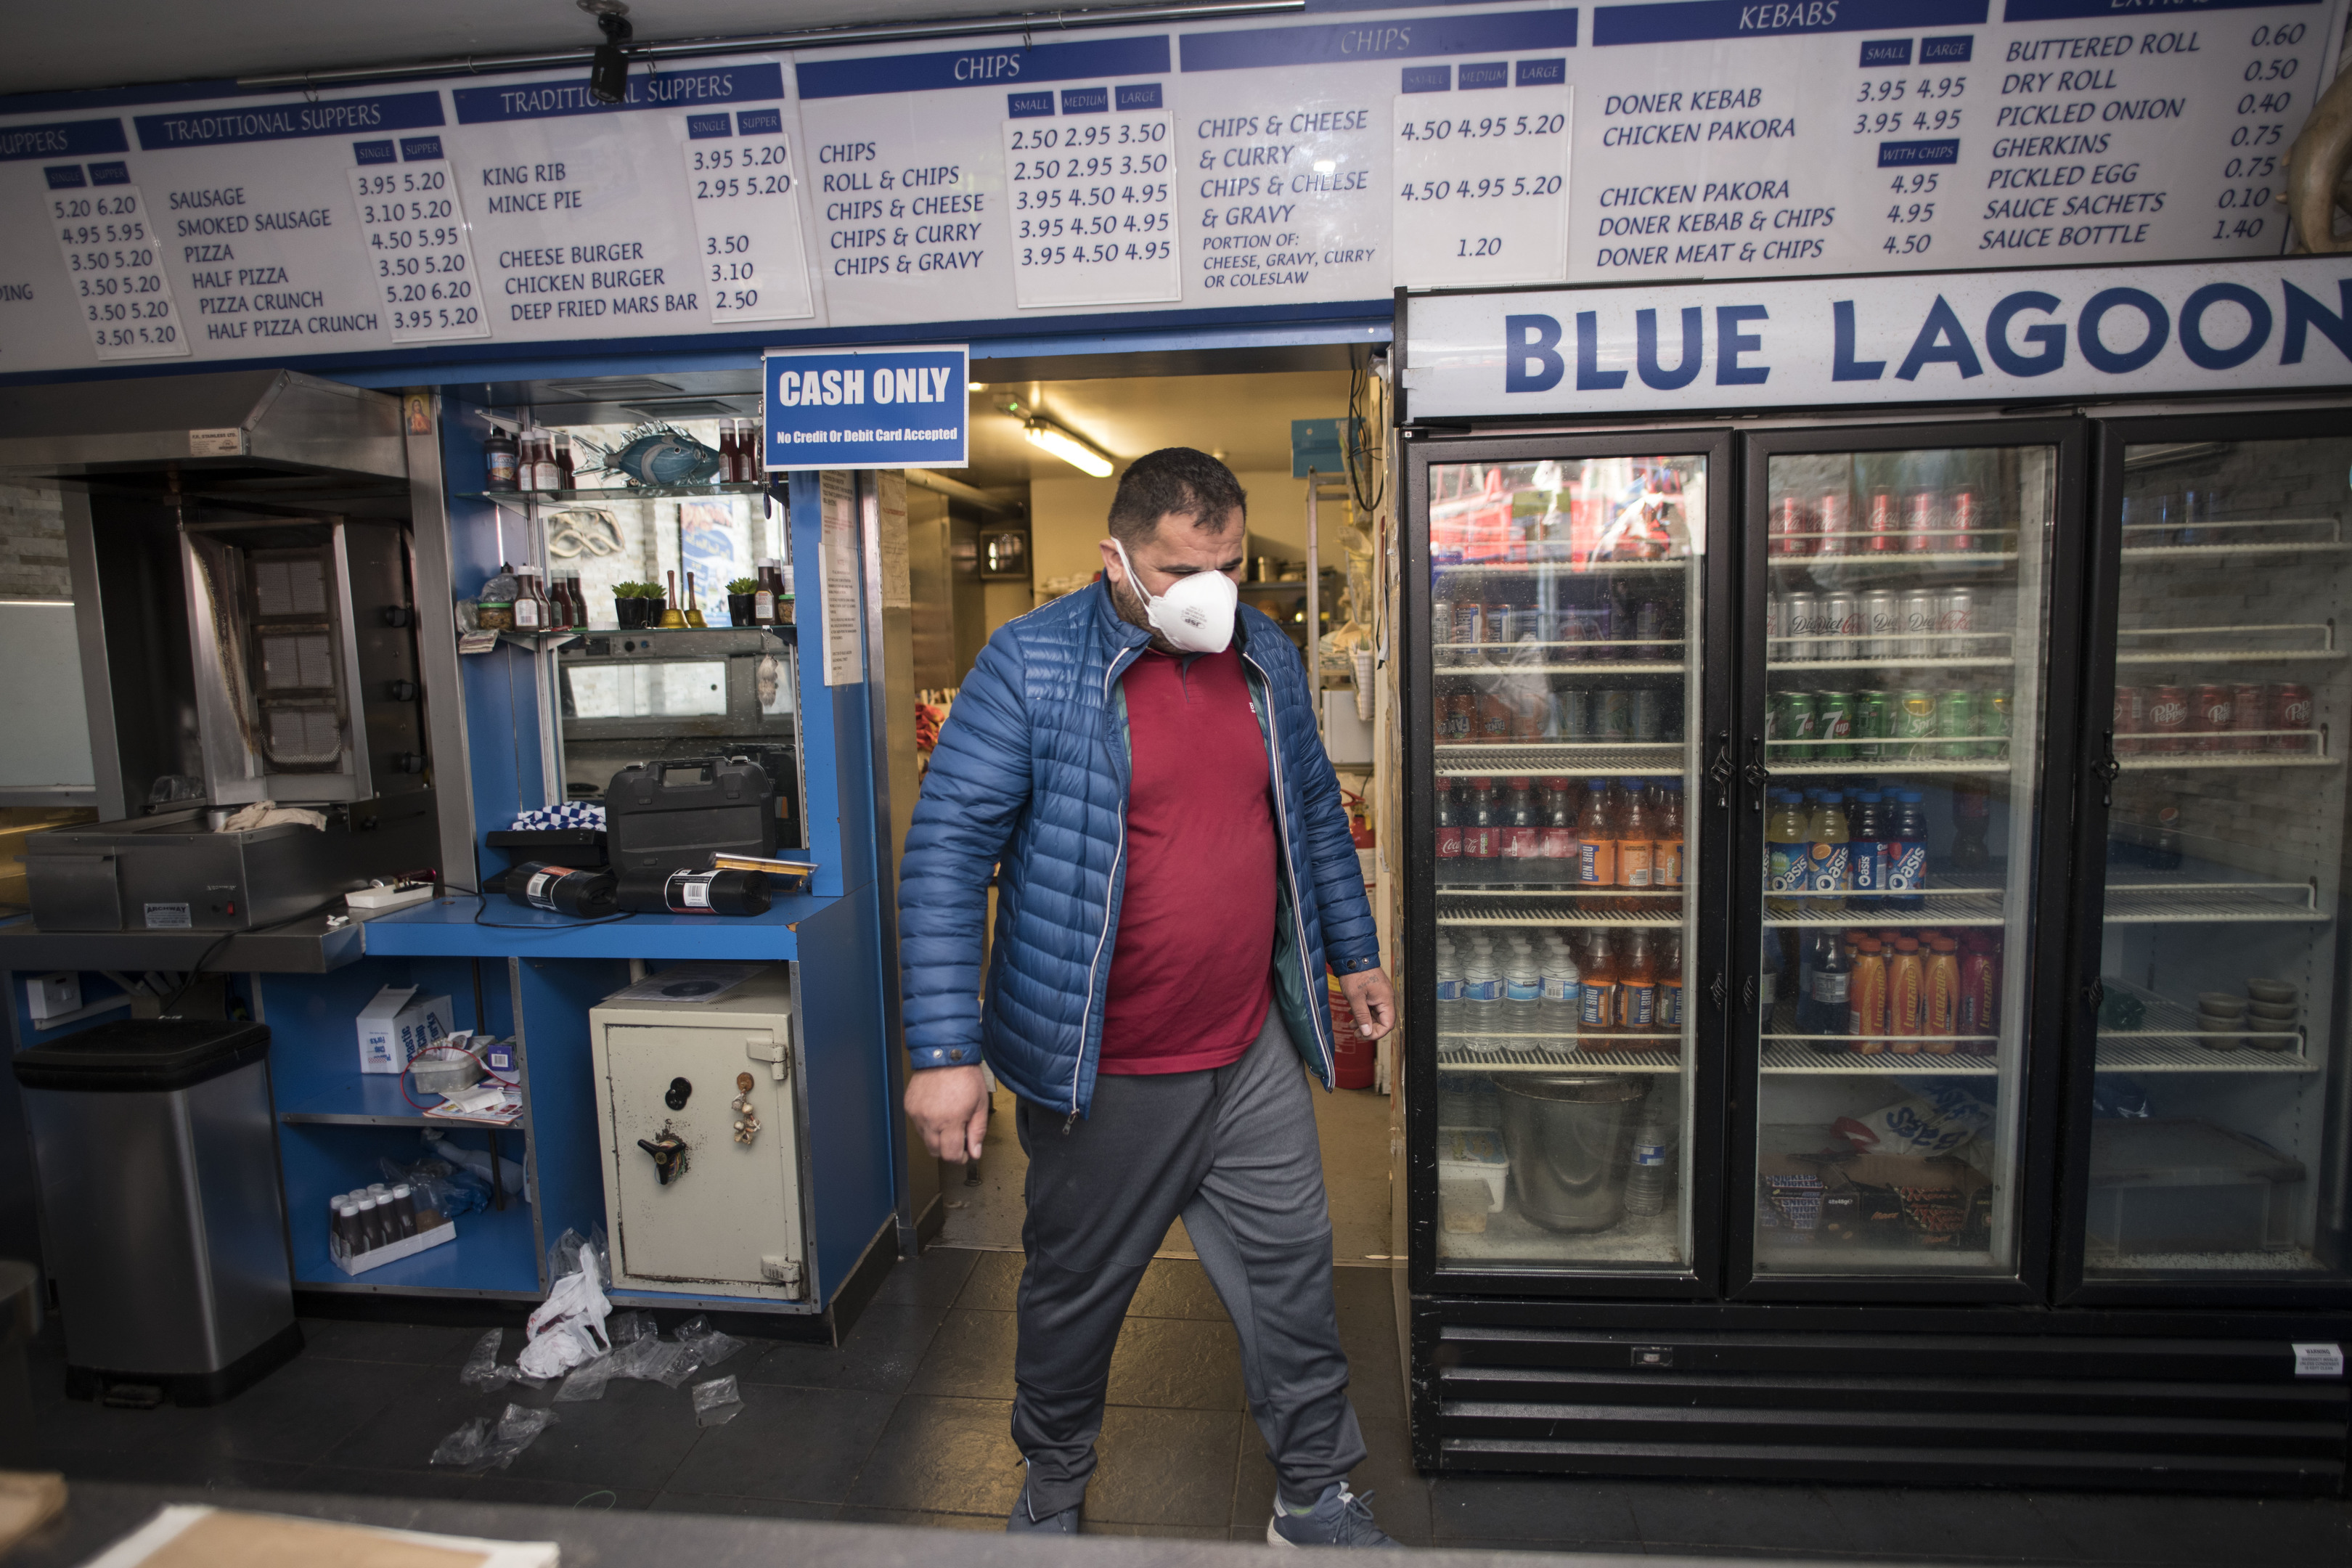 Blue Lagoon franchise owner Andy Senko surveys the premises after opening the doors for the first time since the fire (Wattie Cheung)